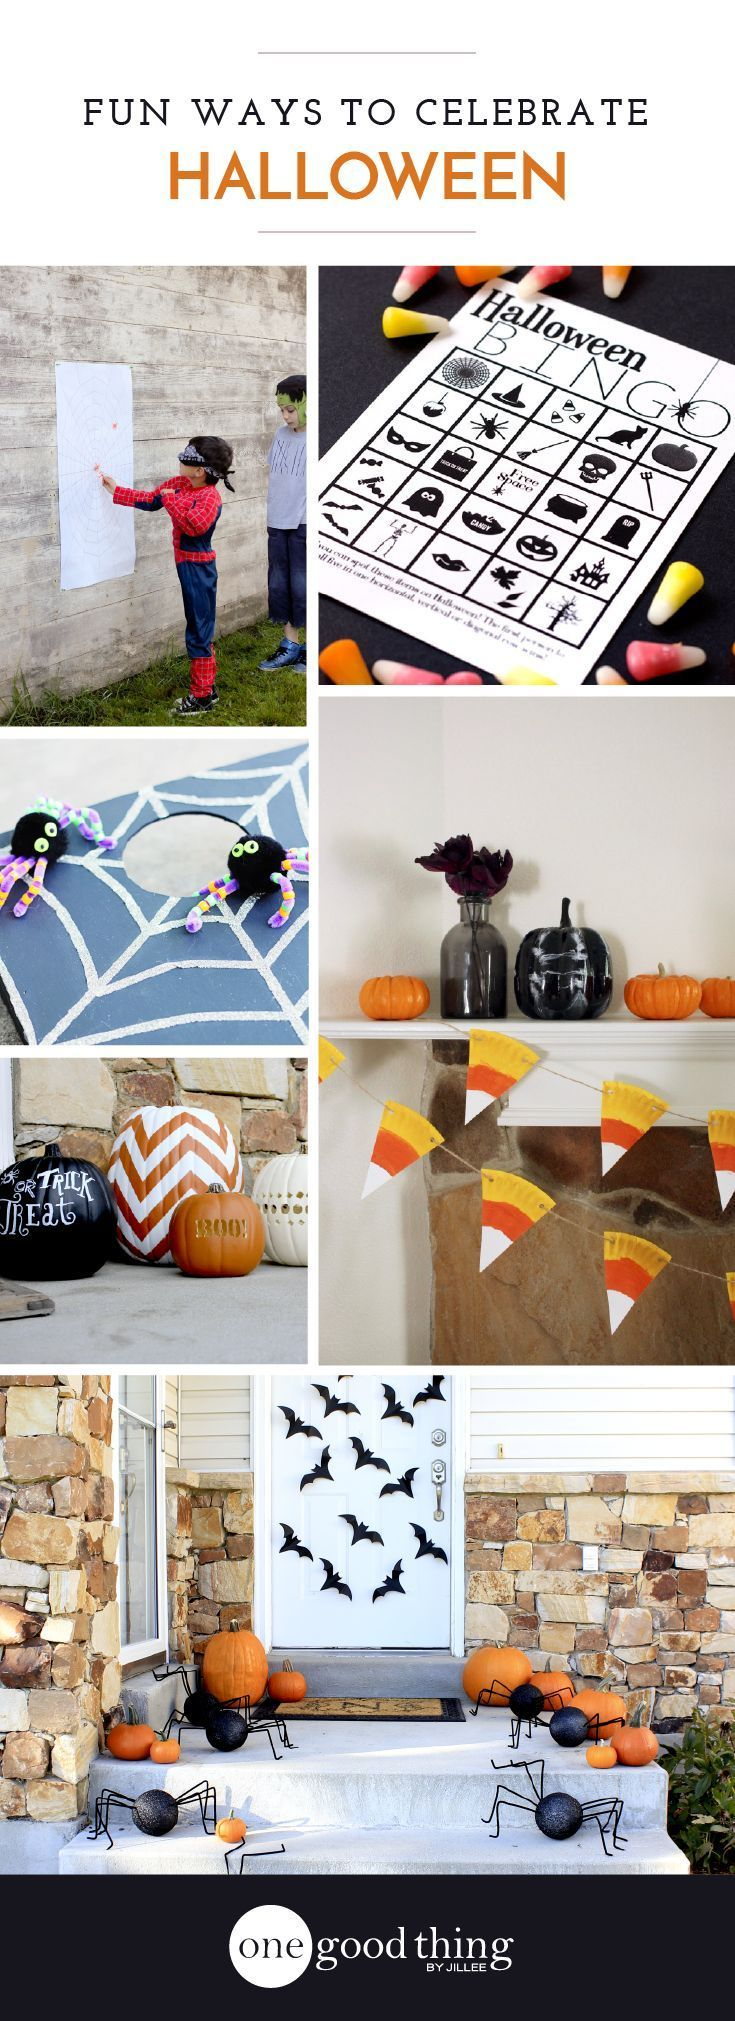 16 Fun and Easy Ways to Celebrate Halloween